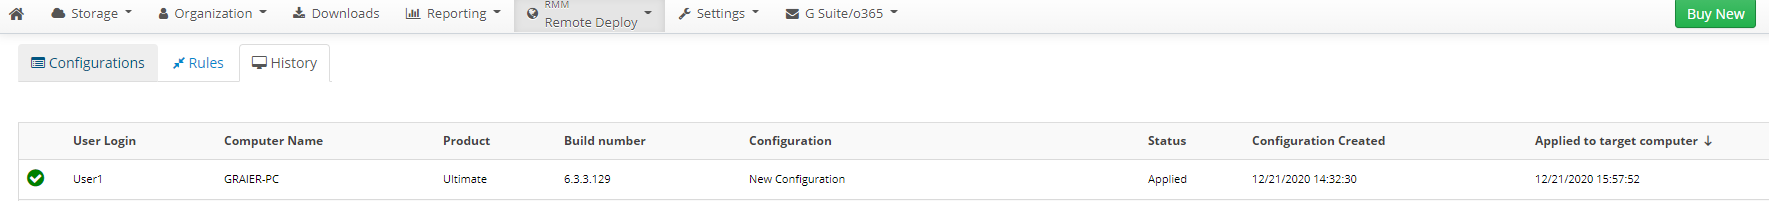 Remote Deploy in Managed Backup Service: Configuration Applied